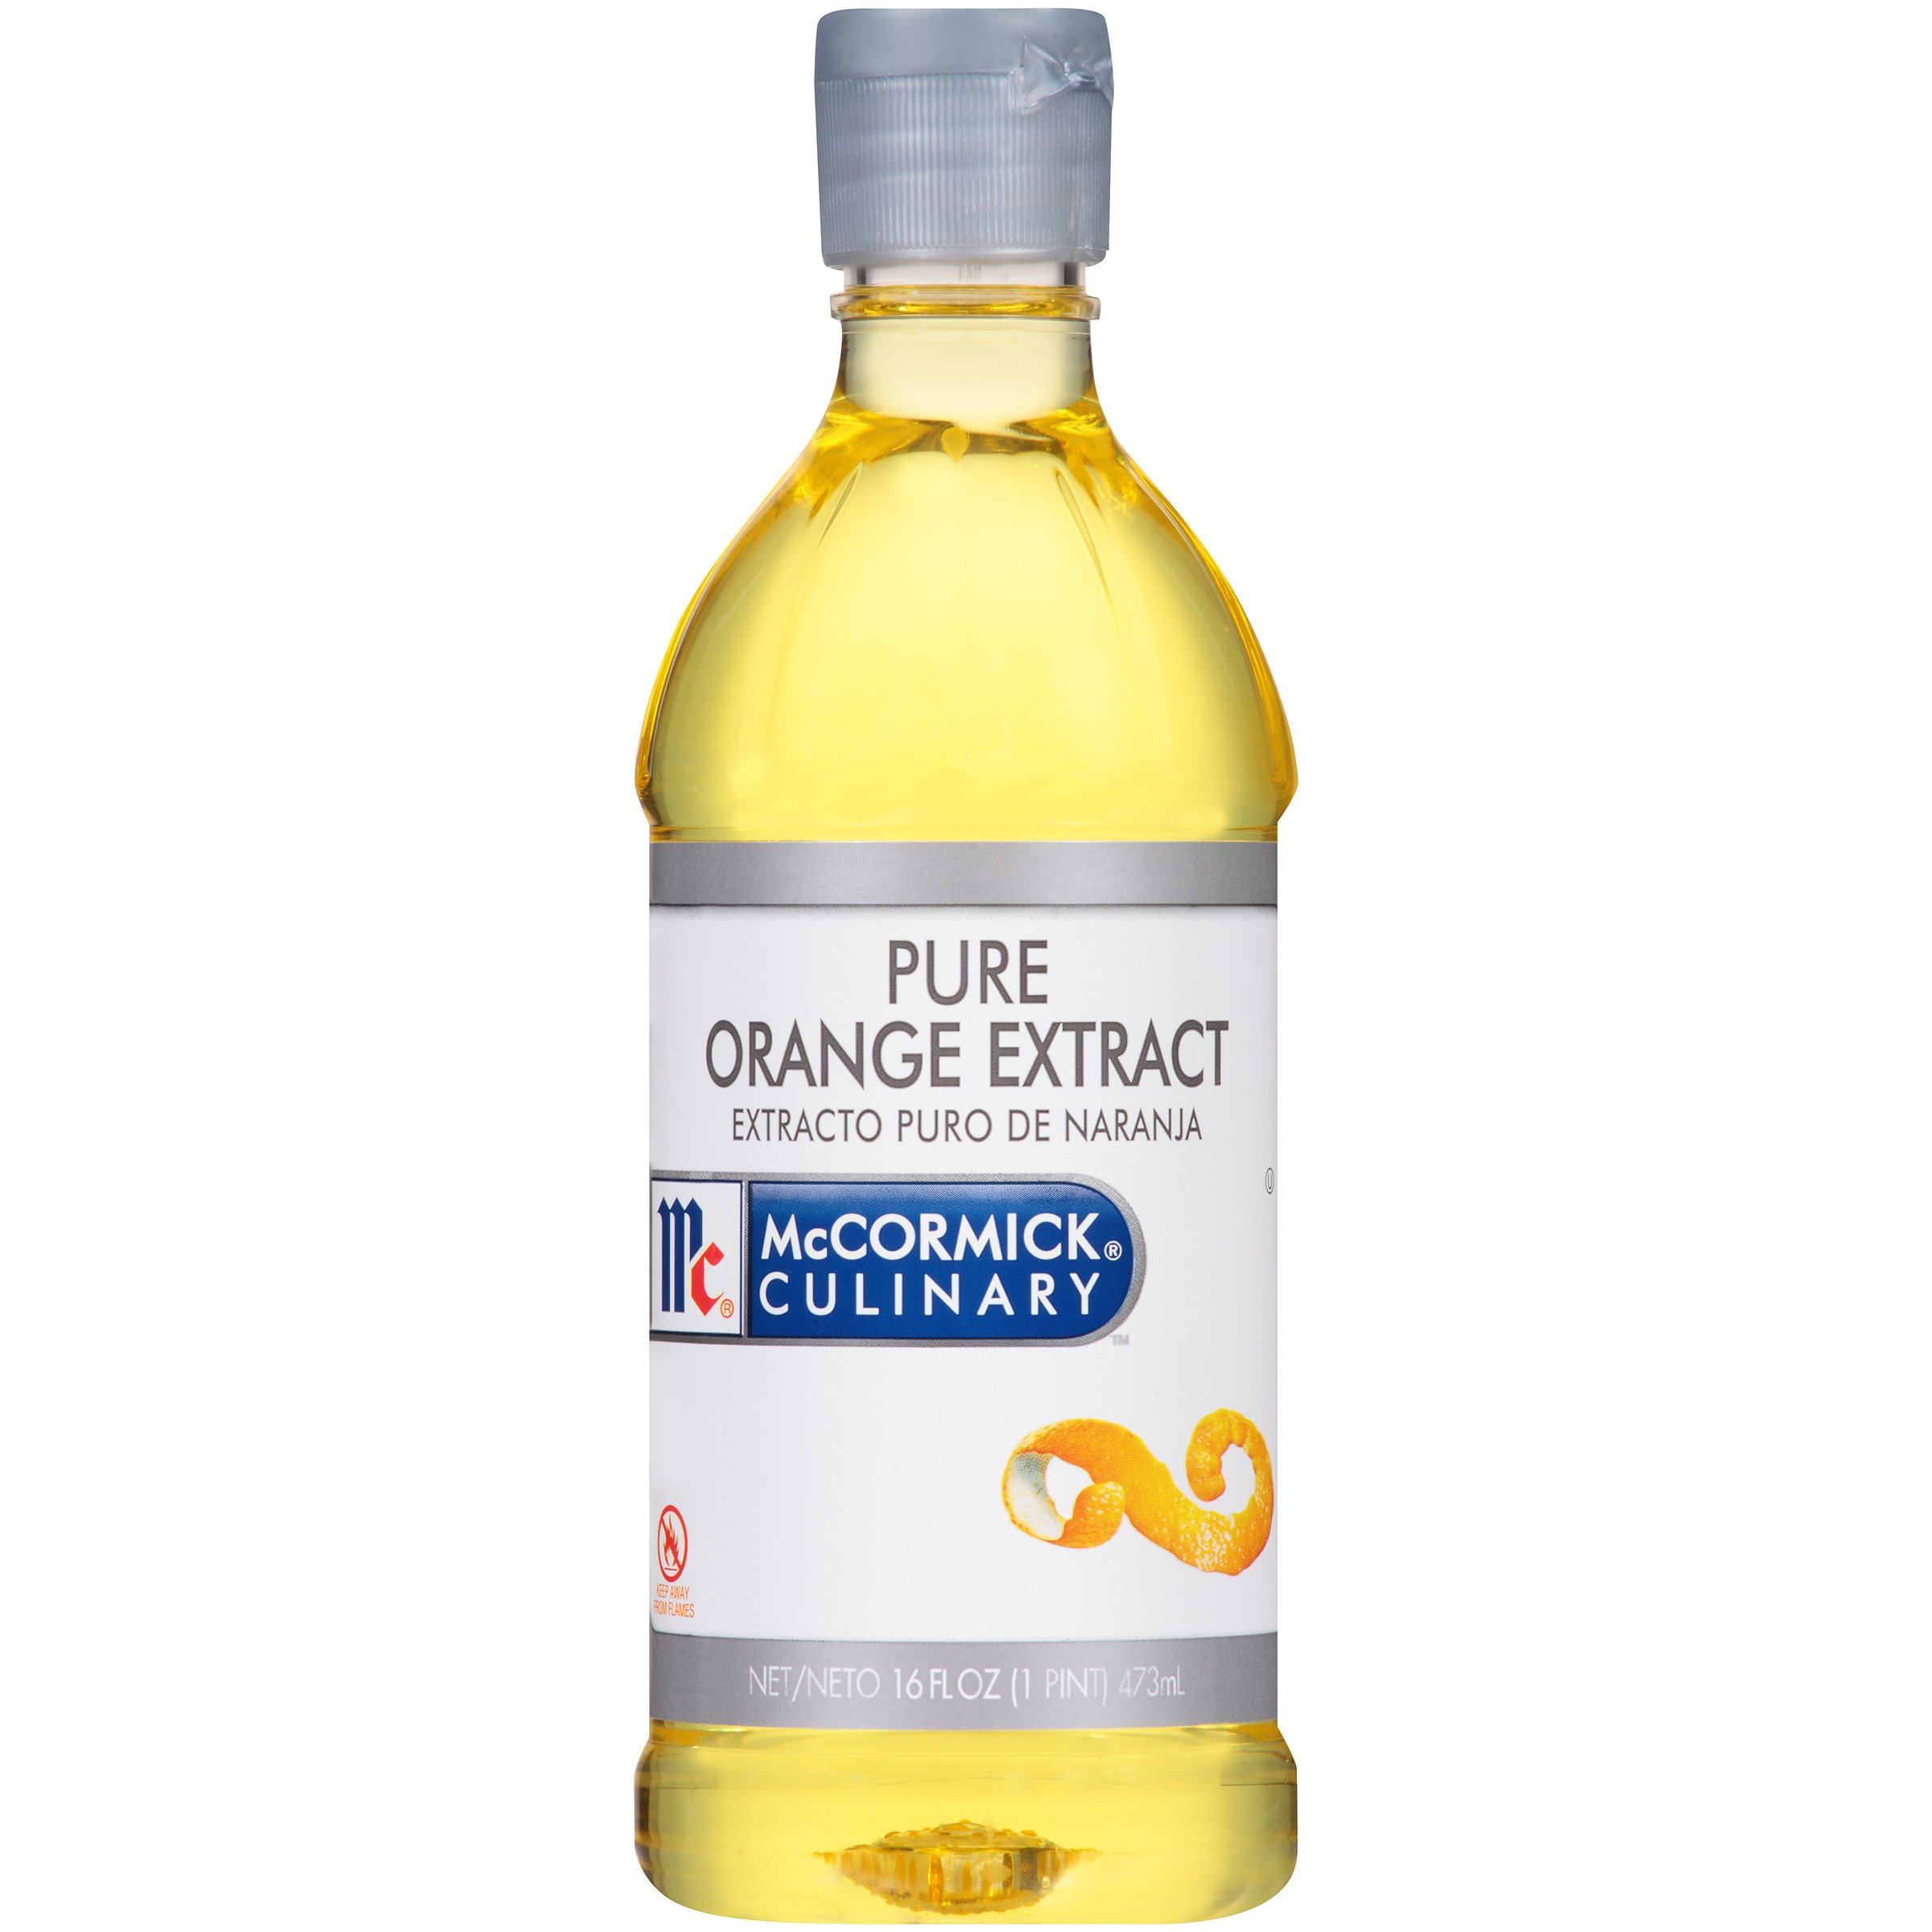 Mc Cormick PURE Orange Extract (กลิ่นส้ม) 473 ml.